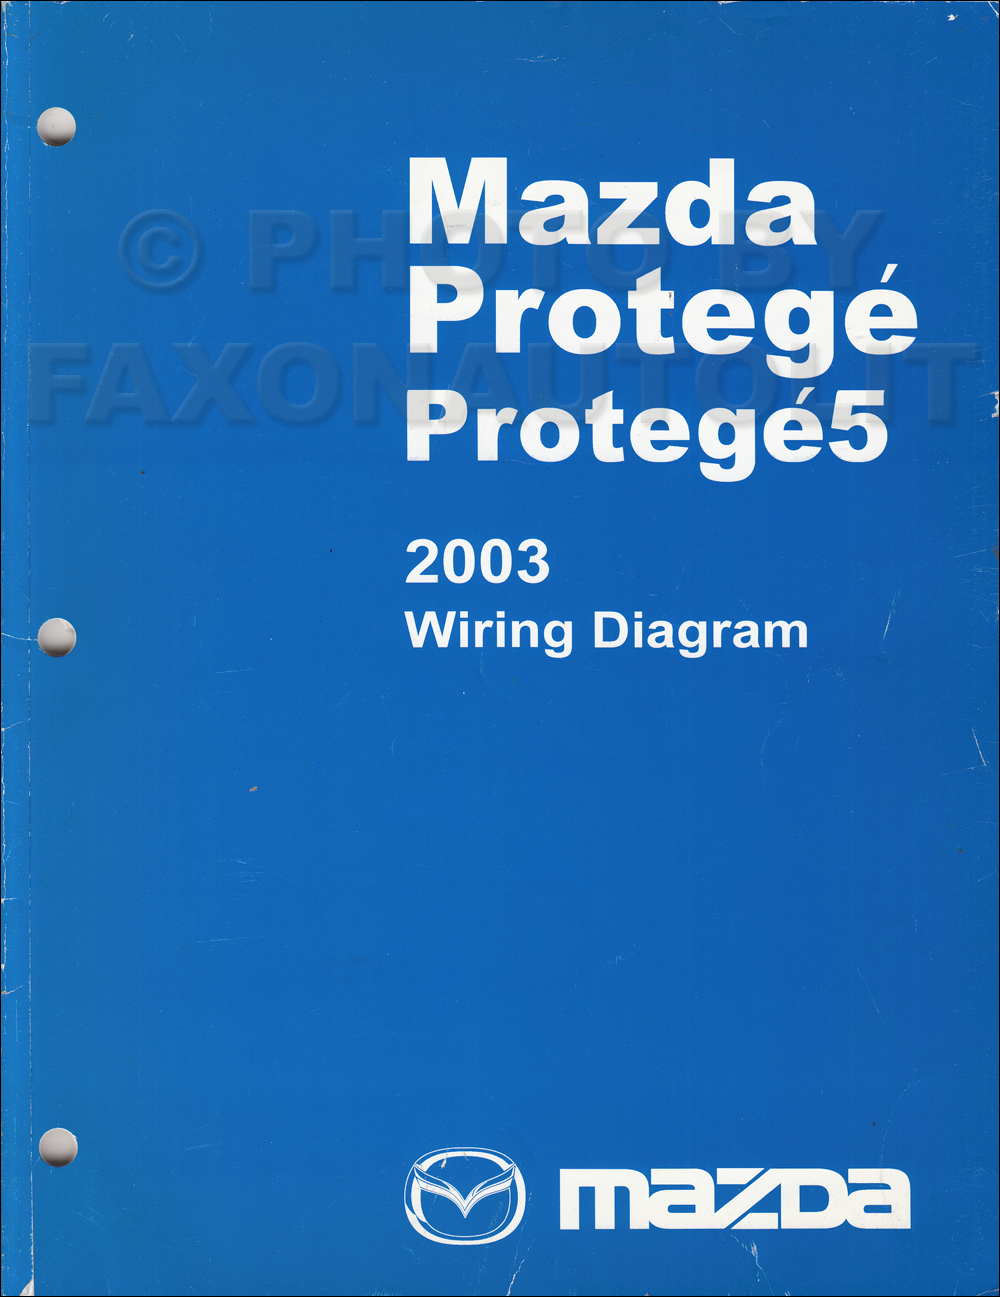 cruise control wiring diagram sankey for solar power mazda protege 2003 and protege5 manual originalmazda 7